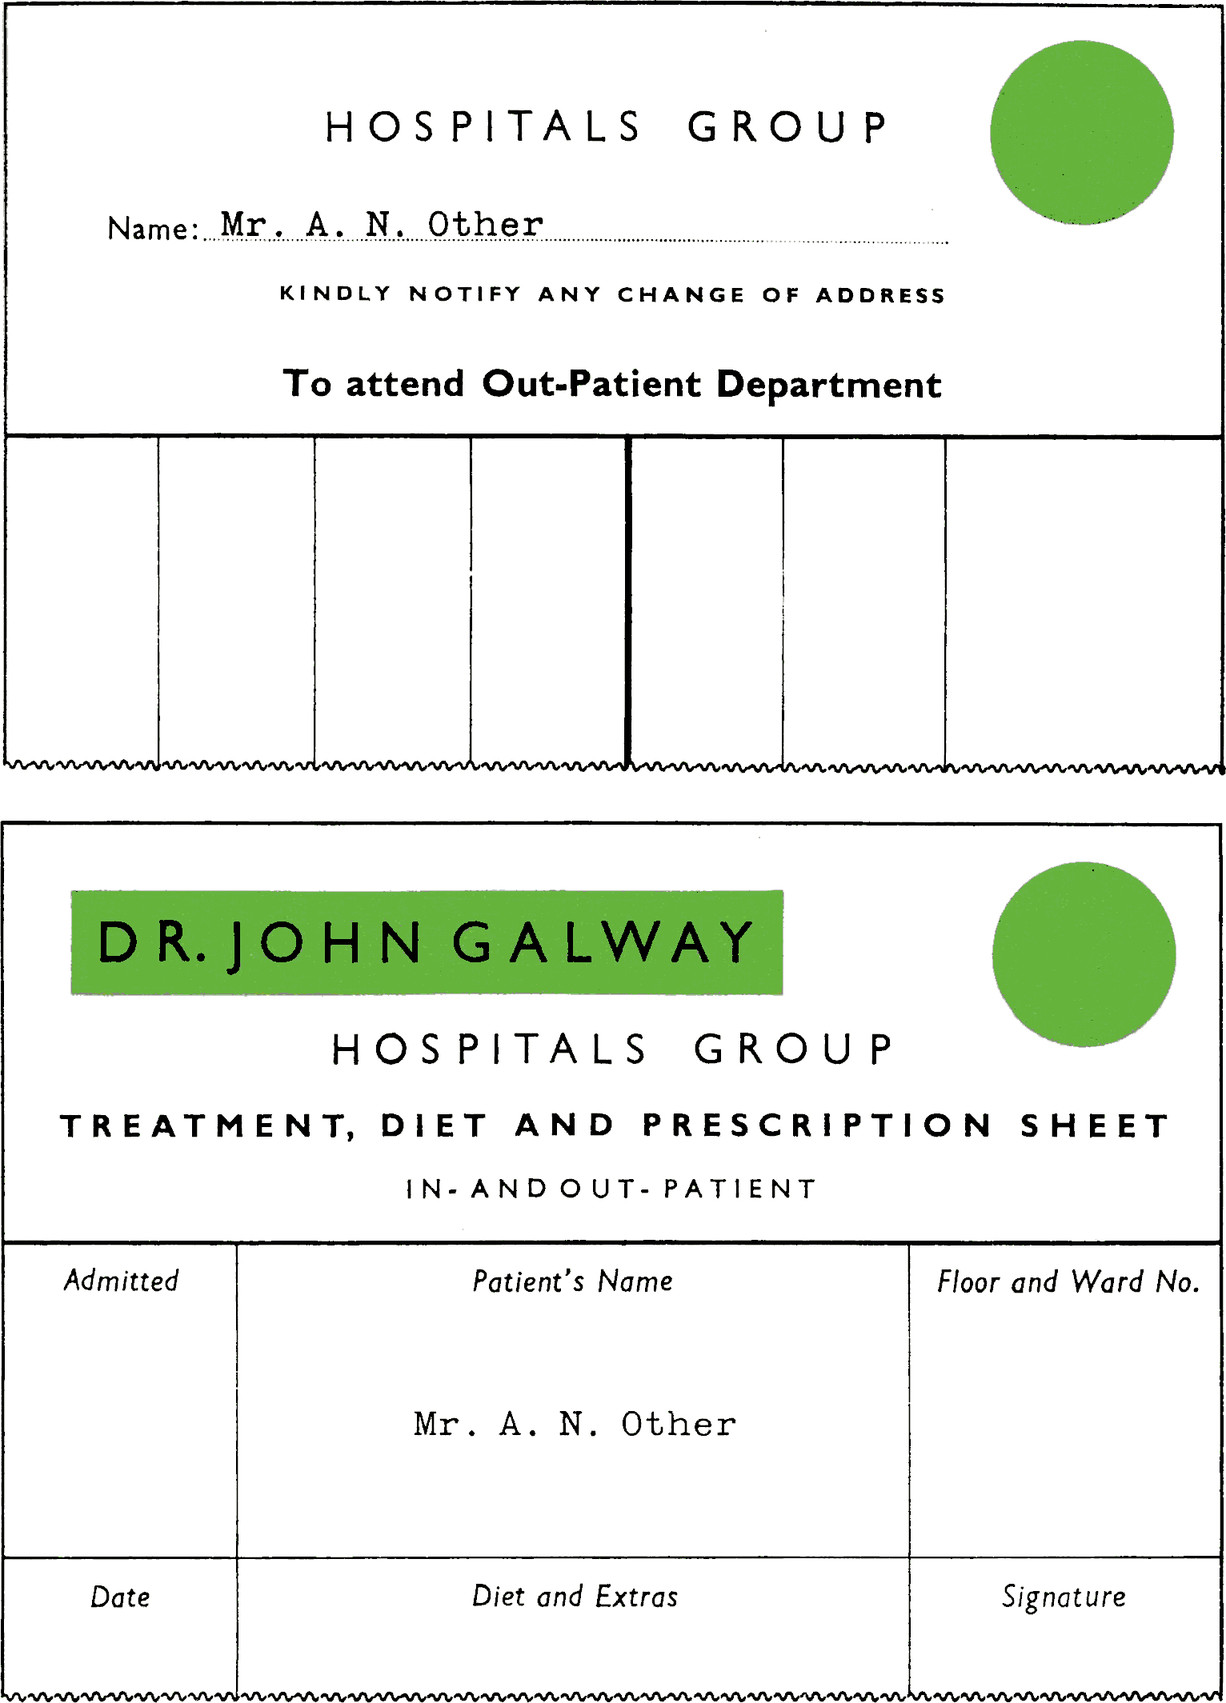 Form with title HOSPITALS GROUP. Large green circle top right. Name: Mr. A. N. Other. KINDLY NOTIFY ANY CHANGE OF ADDRESS To attend Out-Patient Department. Blank columns. Second form with title  HOSPITALS GROUP. TREATMENT, DIET AND PRESCRIPTION SHEET. IN- AND OUT- PATIENT. With a green background: DR. JOHN GALWAY. Large green circle top right. Admitted field: blank. Patient's Name: Mr. A. N. Other. Floor and Ward No. field: blank. Date: blank. Diet and Extras: blank. Signature: blank.